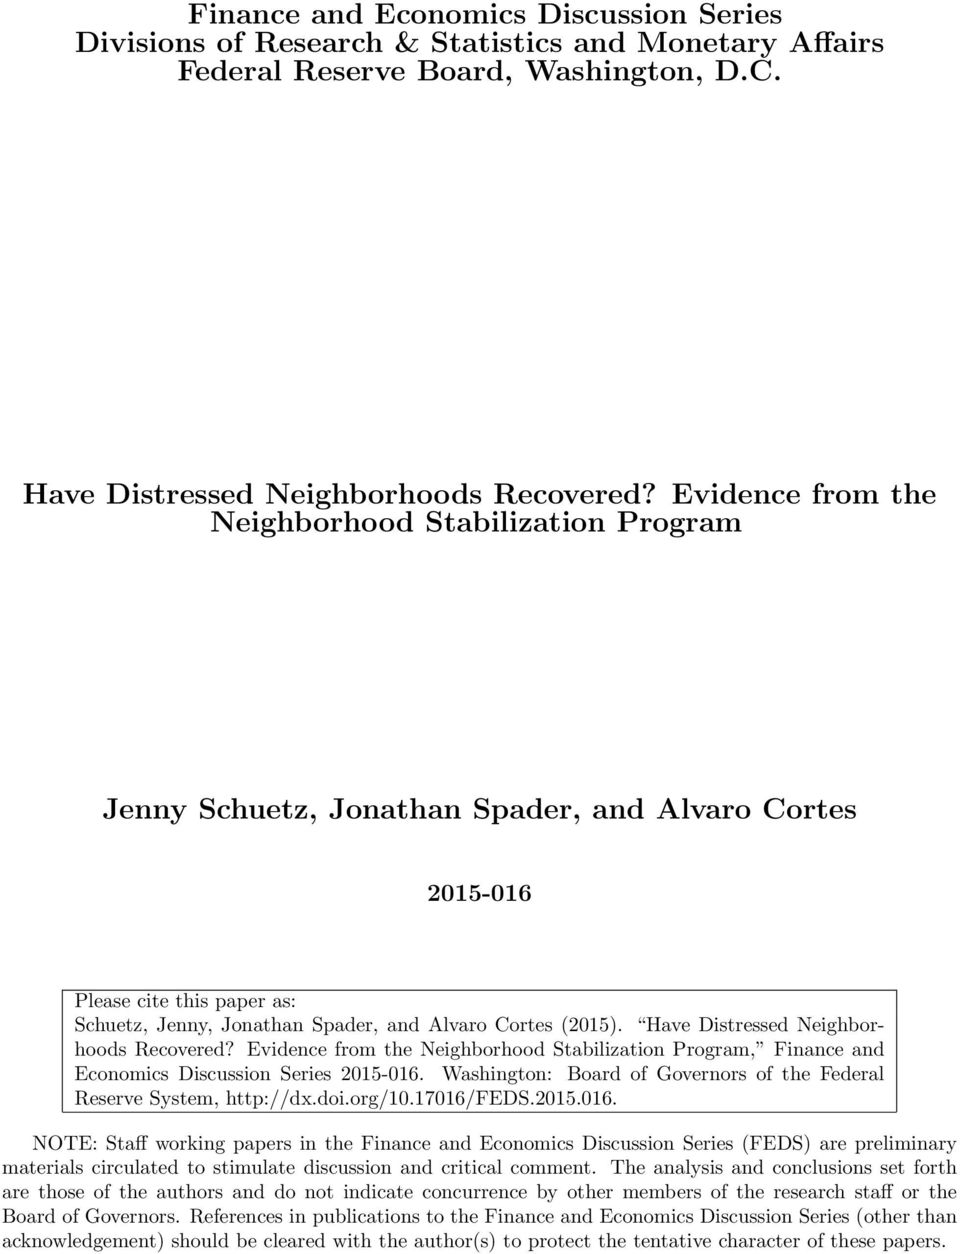 Have Distressed Neighborhoods Recovered? Evidence from the Neighborhood Stabilization Program, Finance and Economics Discussion Series 2015-016.